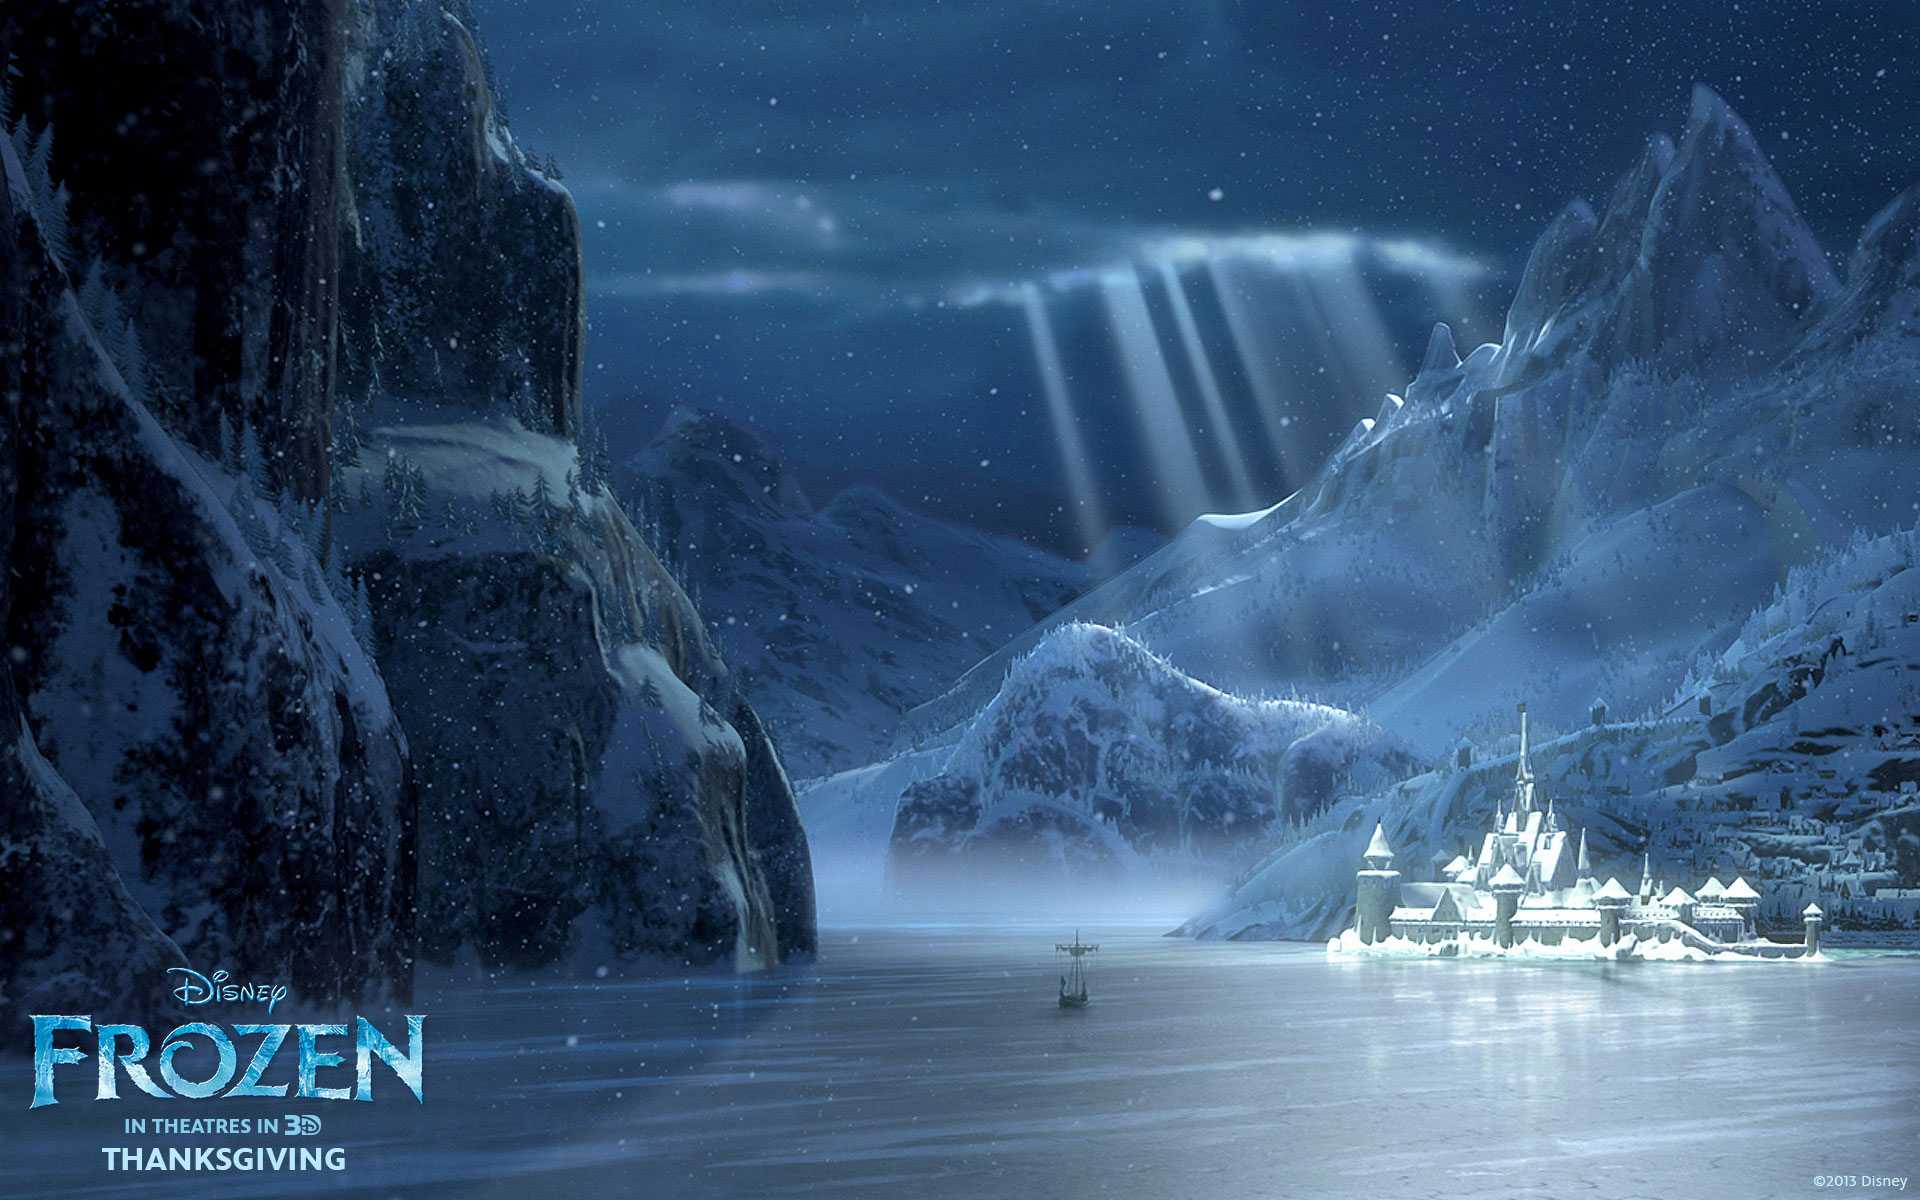 hd wallpaper frozen - photo #6